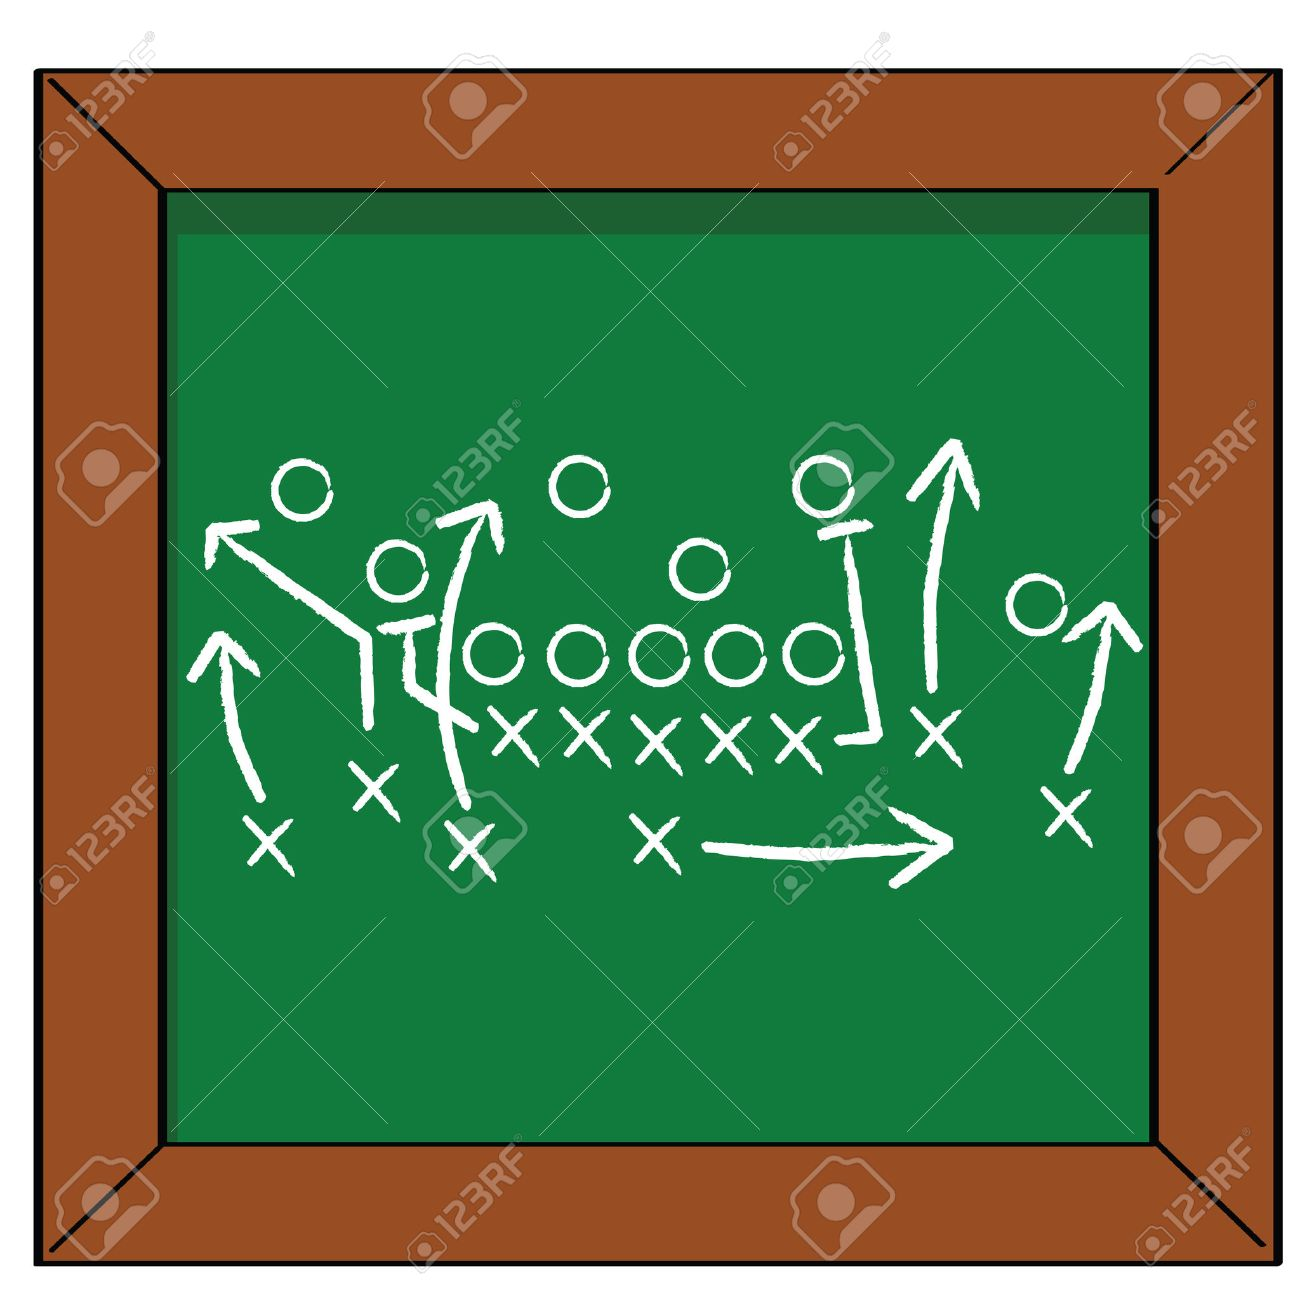 Cartoon illustration of a football game plan on a blackboard Stock Vector - 7530372